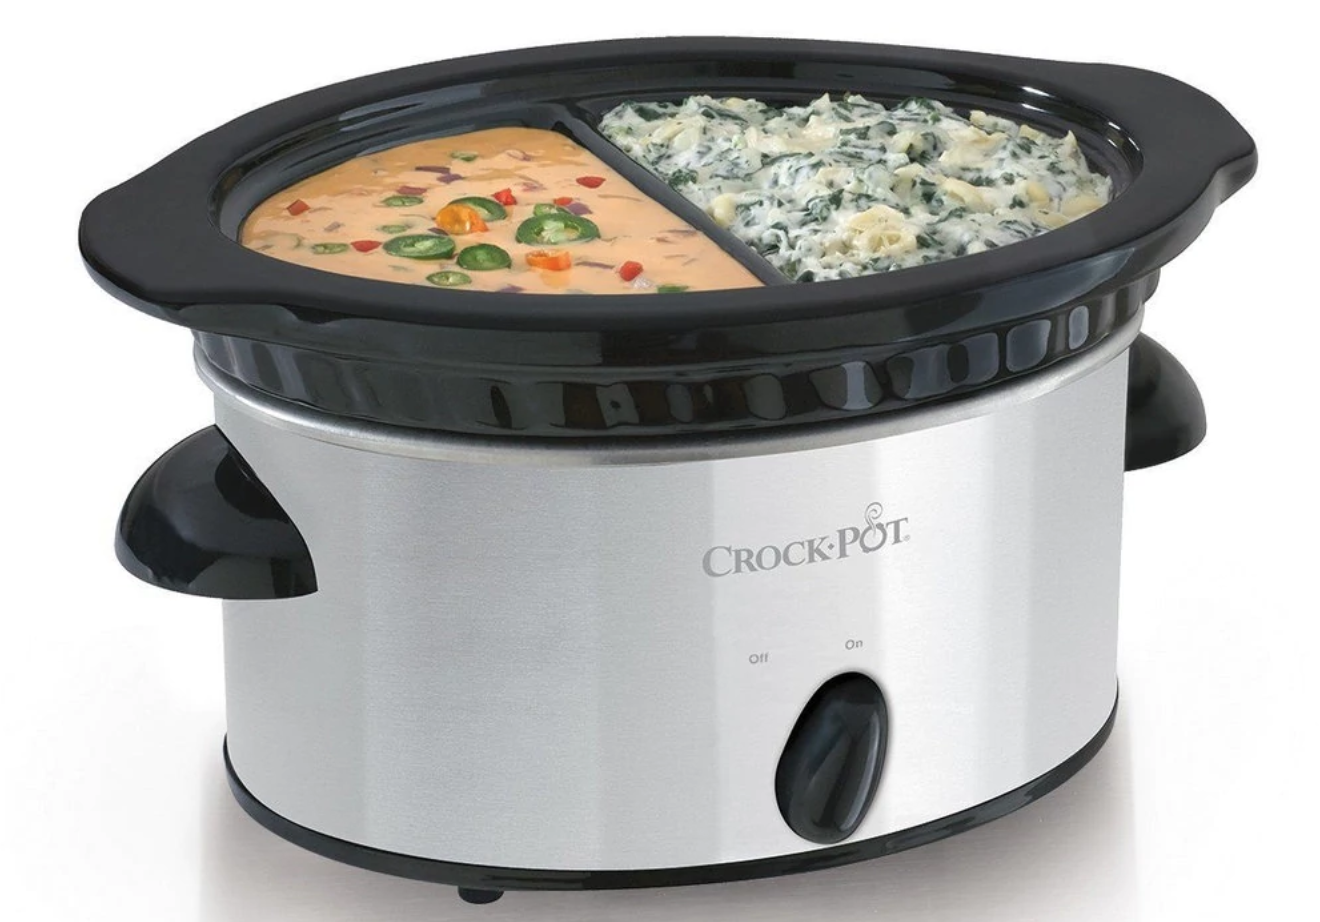 A double dip warmer that fits perfectly on your Crock-Pot, since we all know that cold chile con queso is the absolute worst.